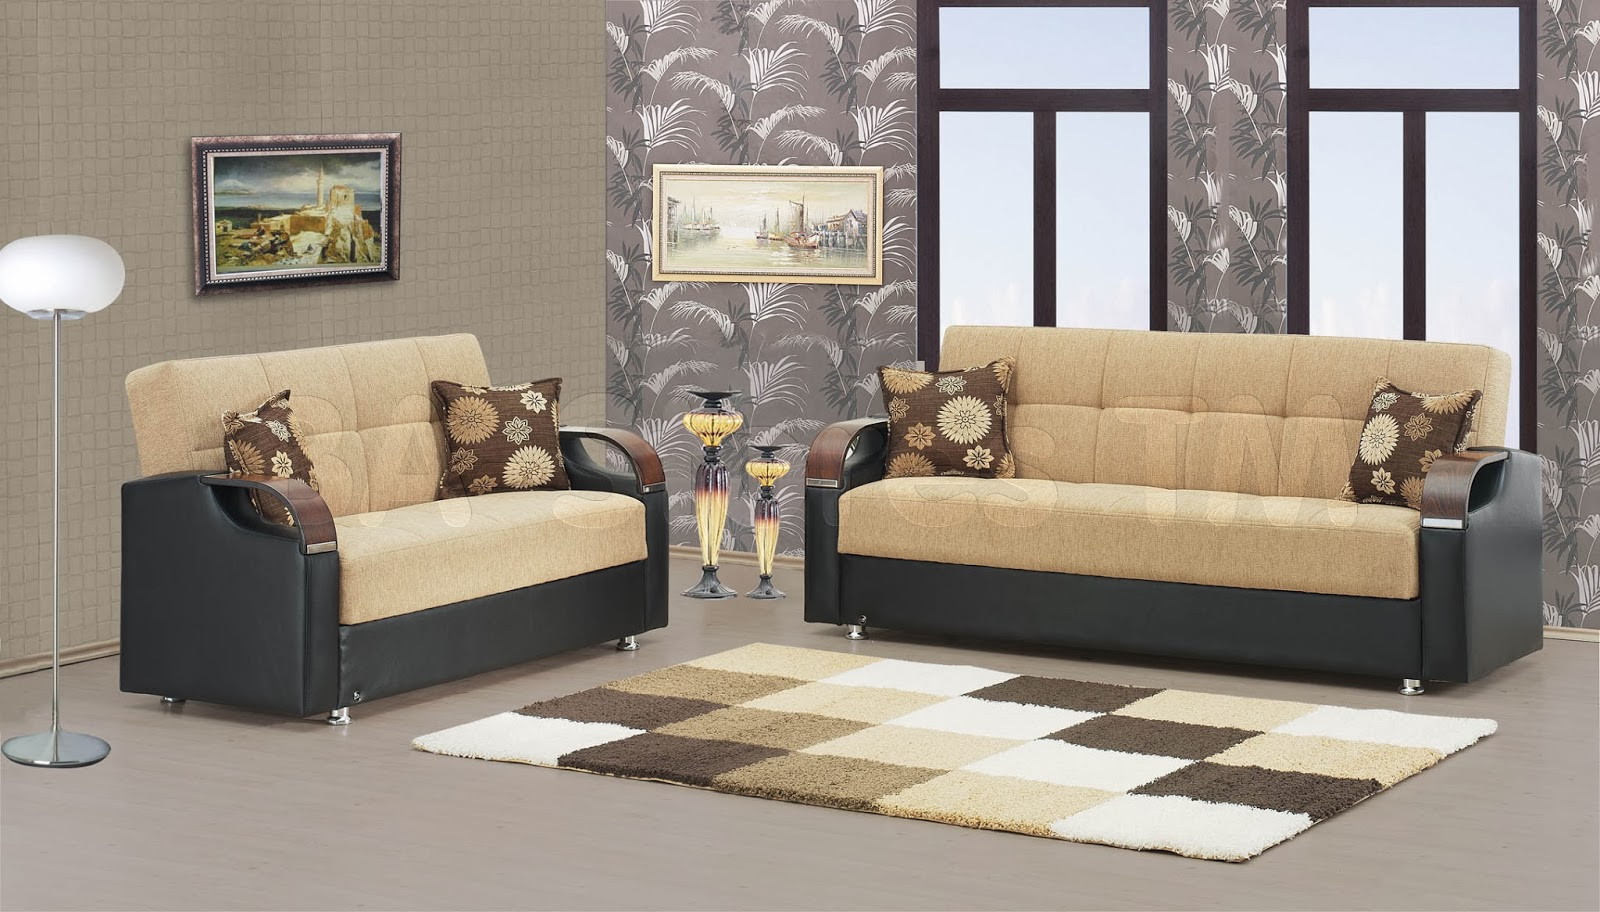 Living Room Design With Leather Sofa | Living Room ...